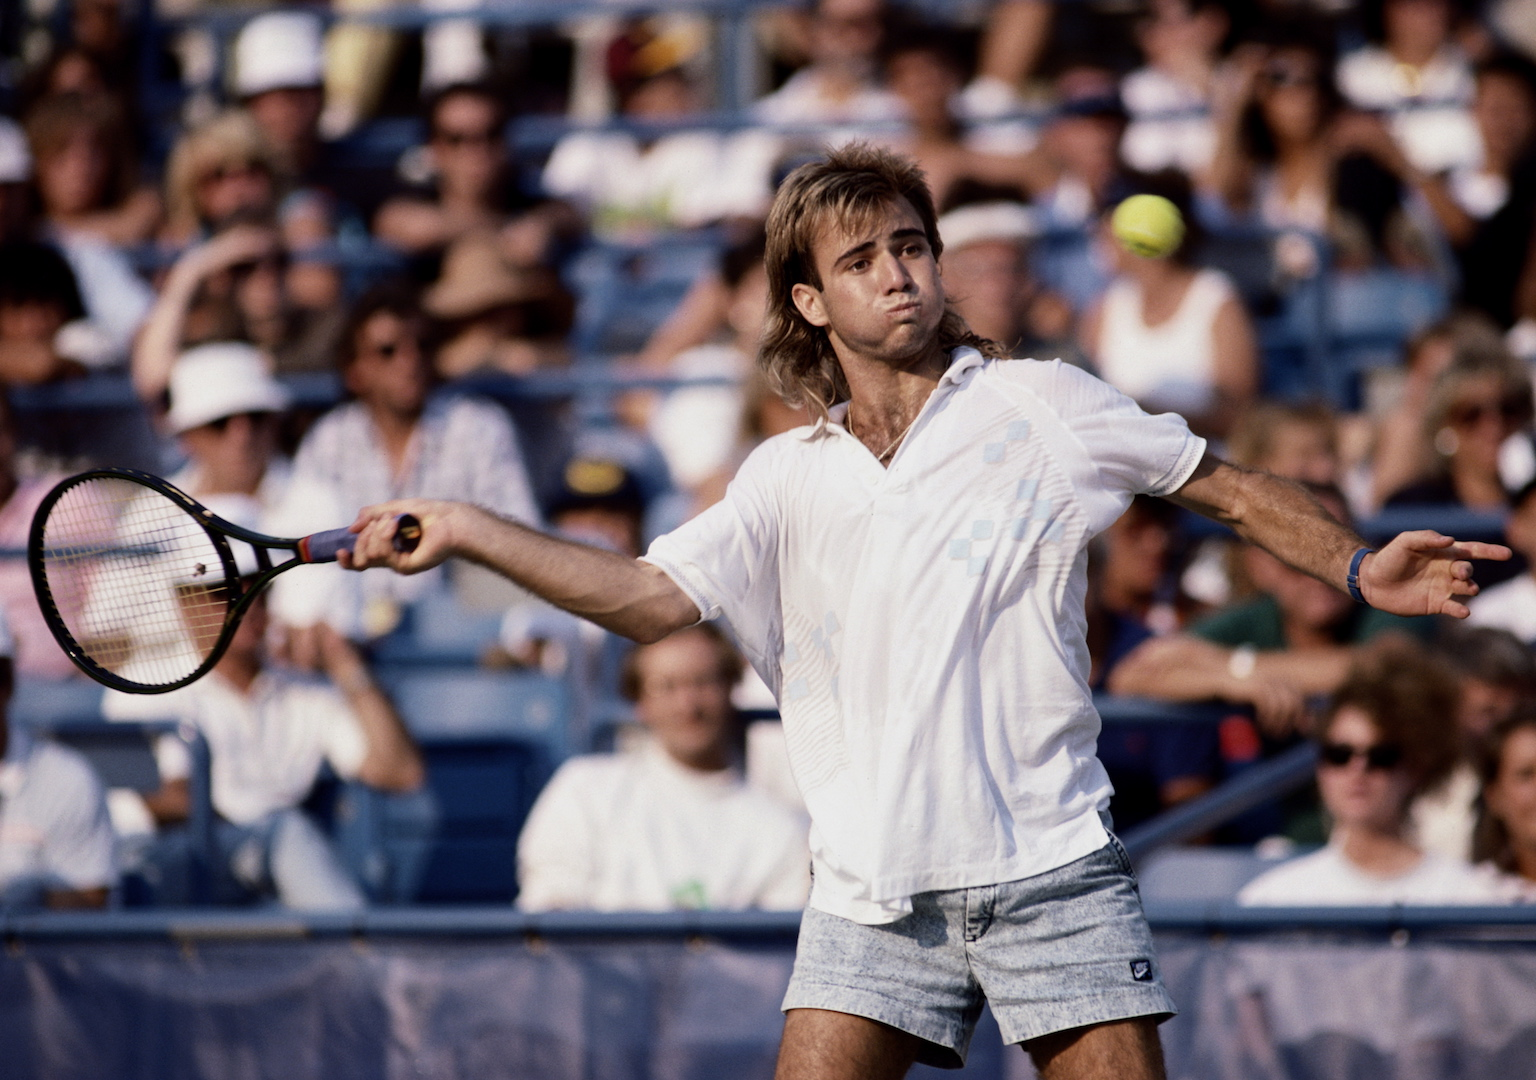 Andre Agassi of the United States wearing his jean style shorts during a Men's Singles match at the U.S.Open Tennis Championship on 1st September 1988 at the USTA National Tennis Center in the Flushing neighbourhood of Queens in New York, United States.(Photo by Mike Powell/Getty Images)